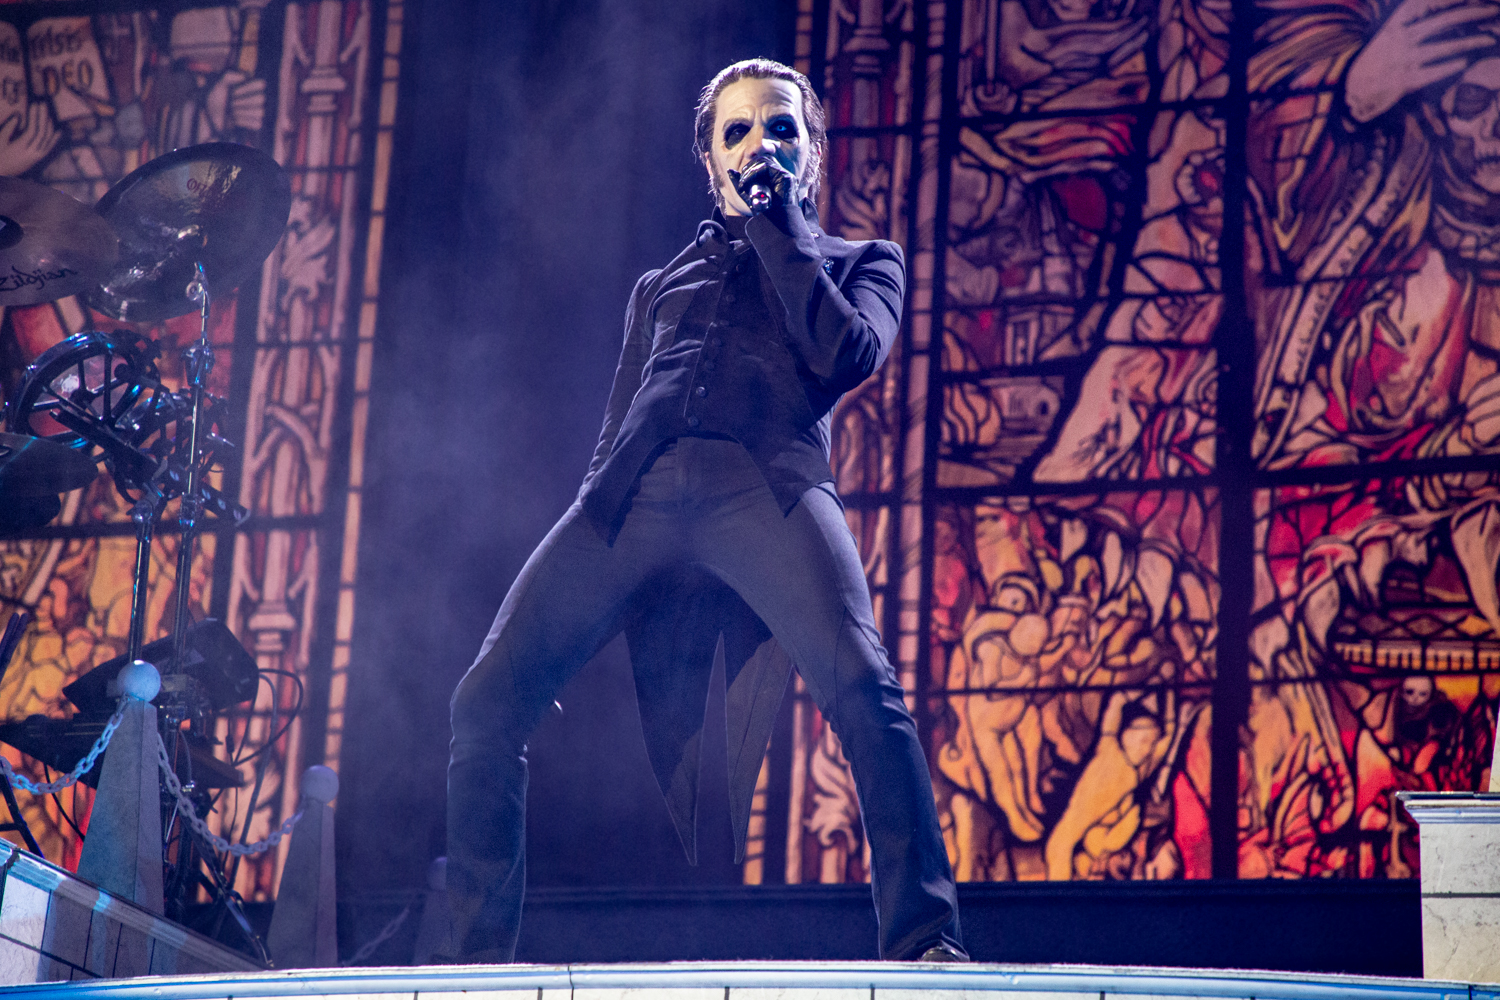 Ghost Barclays Center 2018 12 Live Review: Ghost Turn Brooklyns Barclays Center Into a House of Worship (12/15)